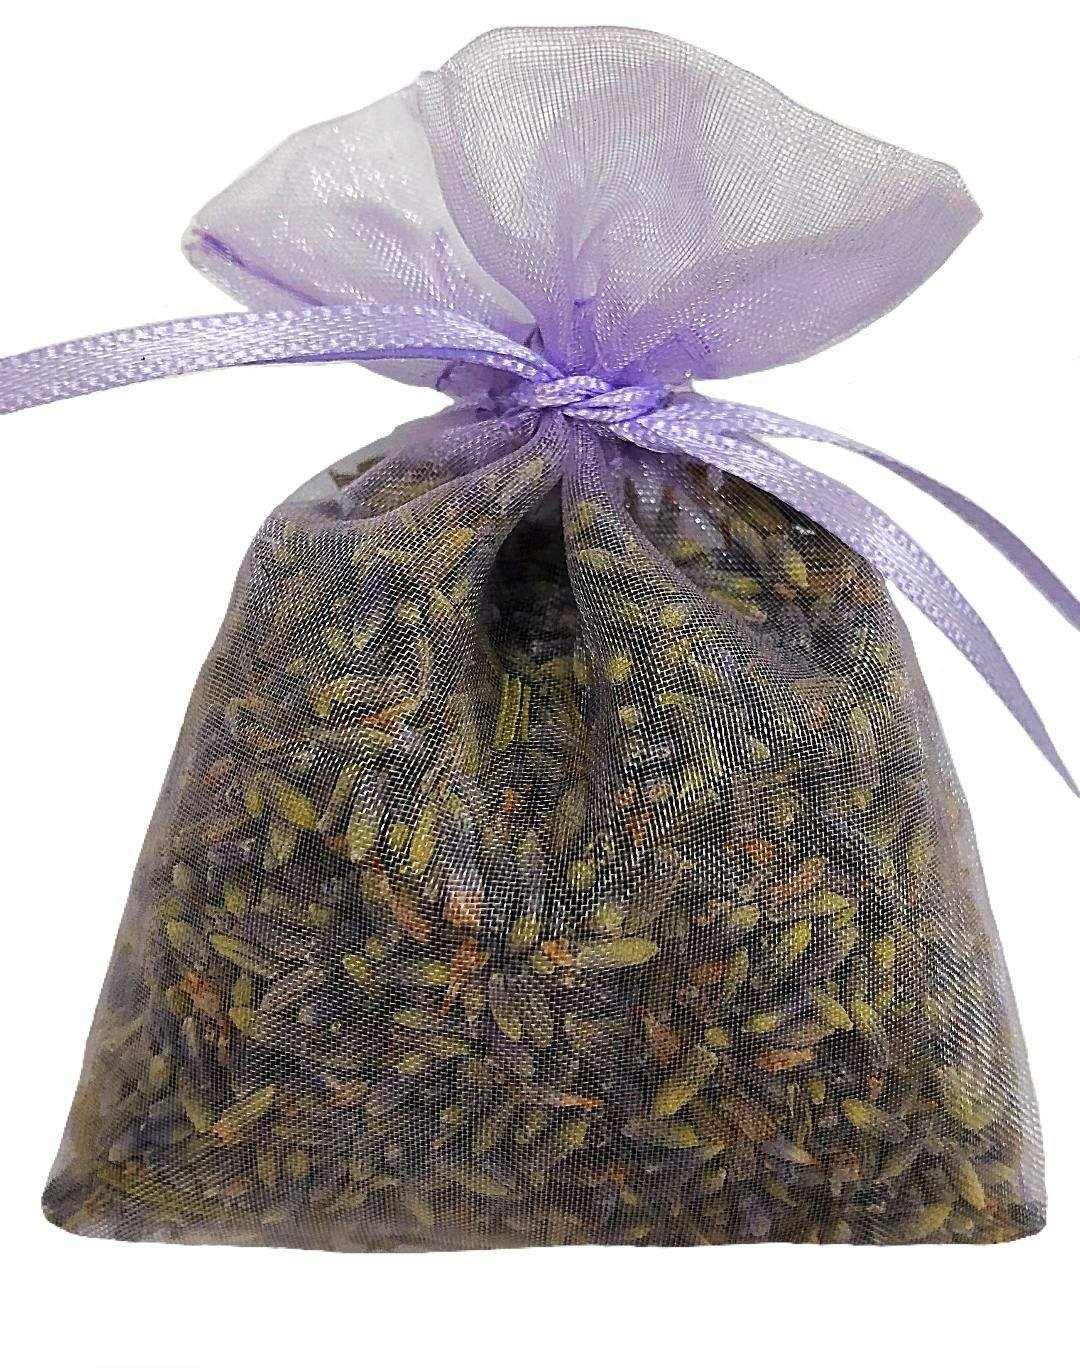 Zziggysgal Dried Lavender Bouquets, 4 per Order, Very Fresh Harvest from California, 15 Inches Tall (California Grosso)